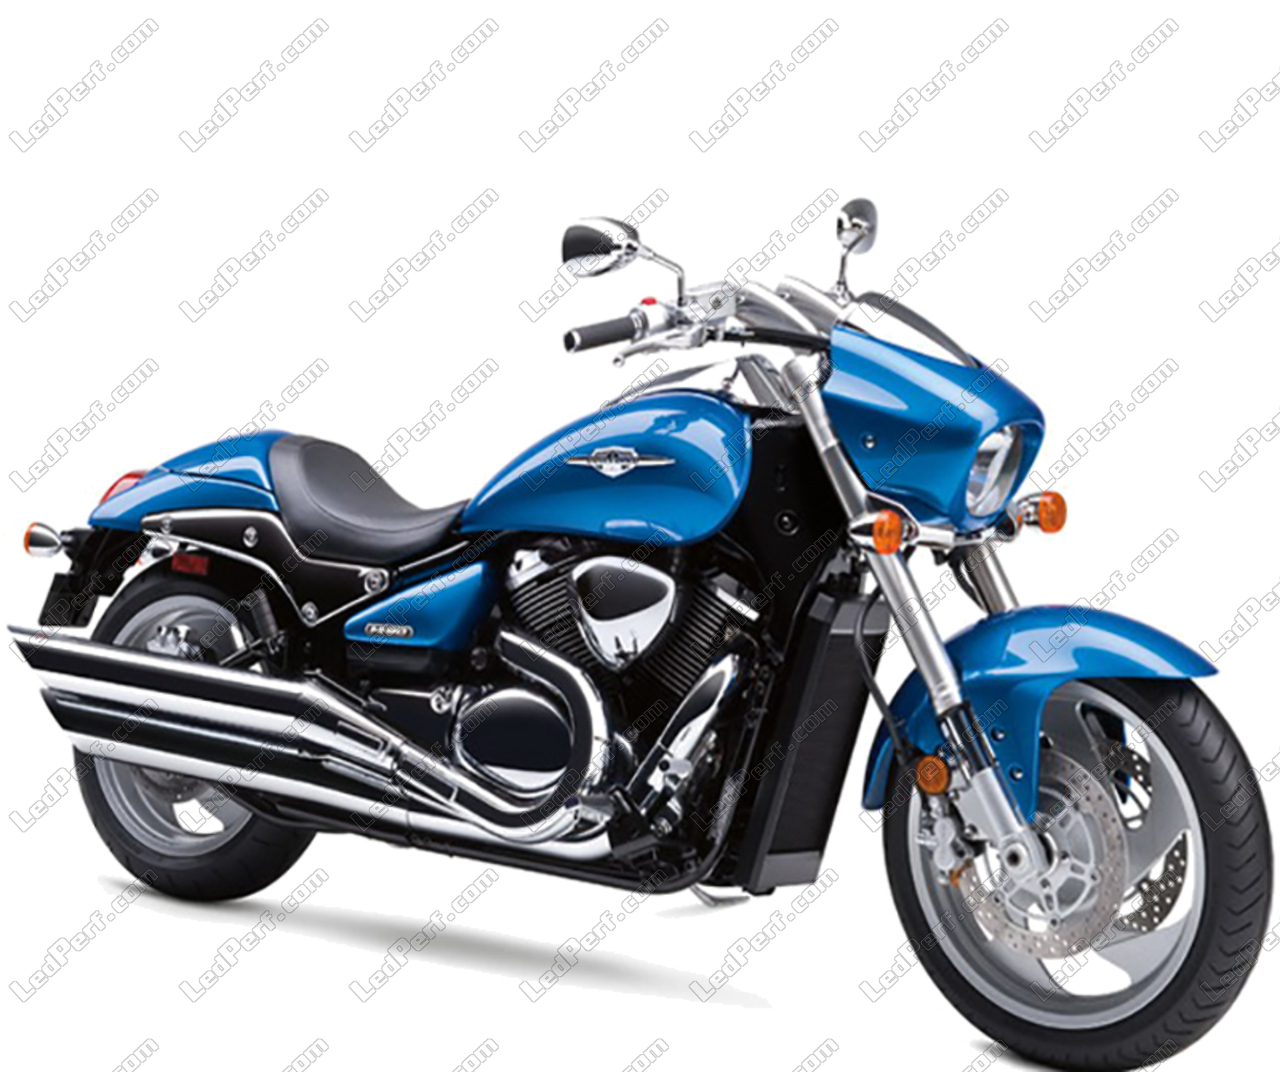 Packs Par Marque Moto Scooter Quad Ssv Spyder Suzuki Intruder 1500